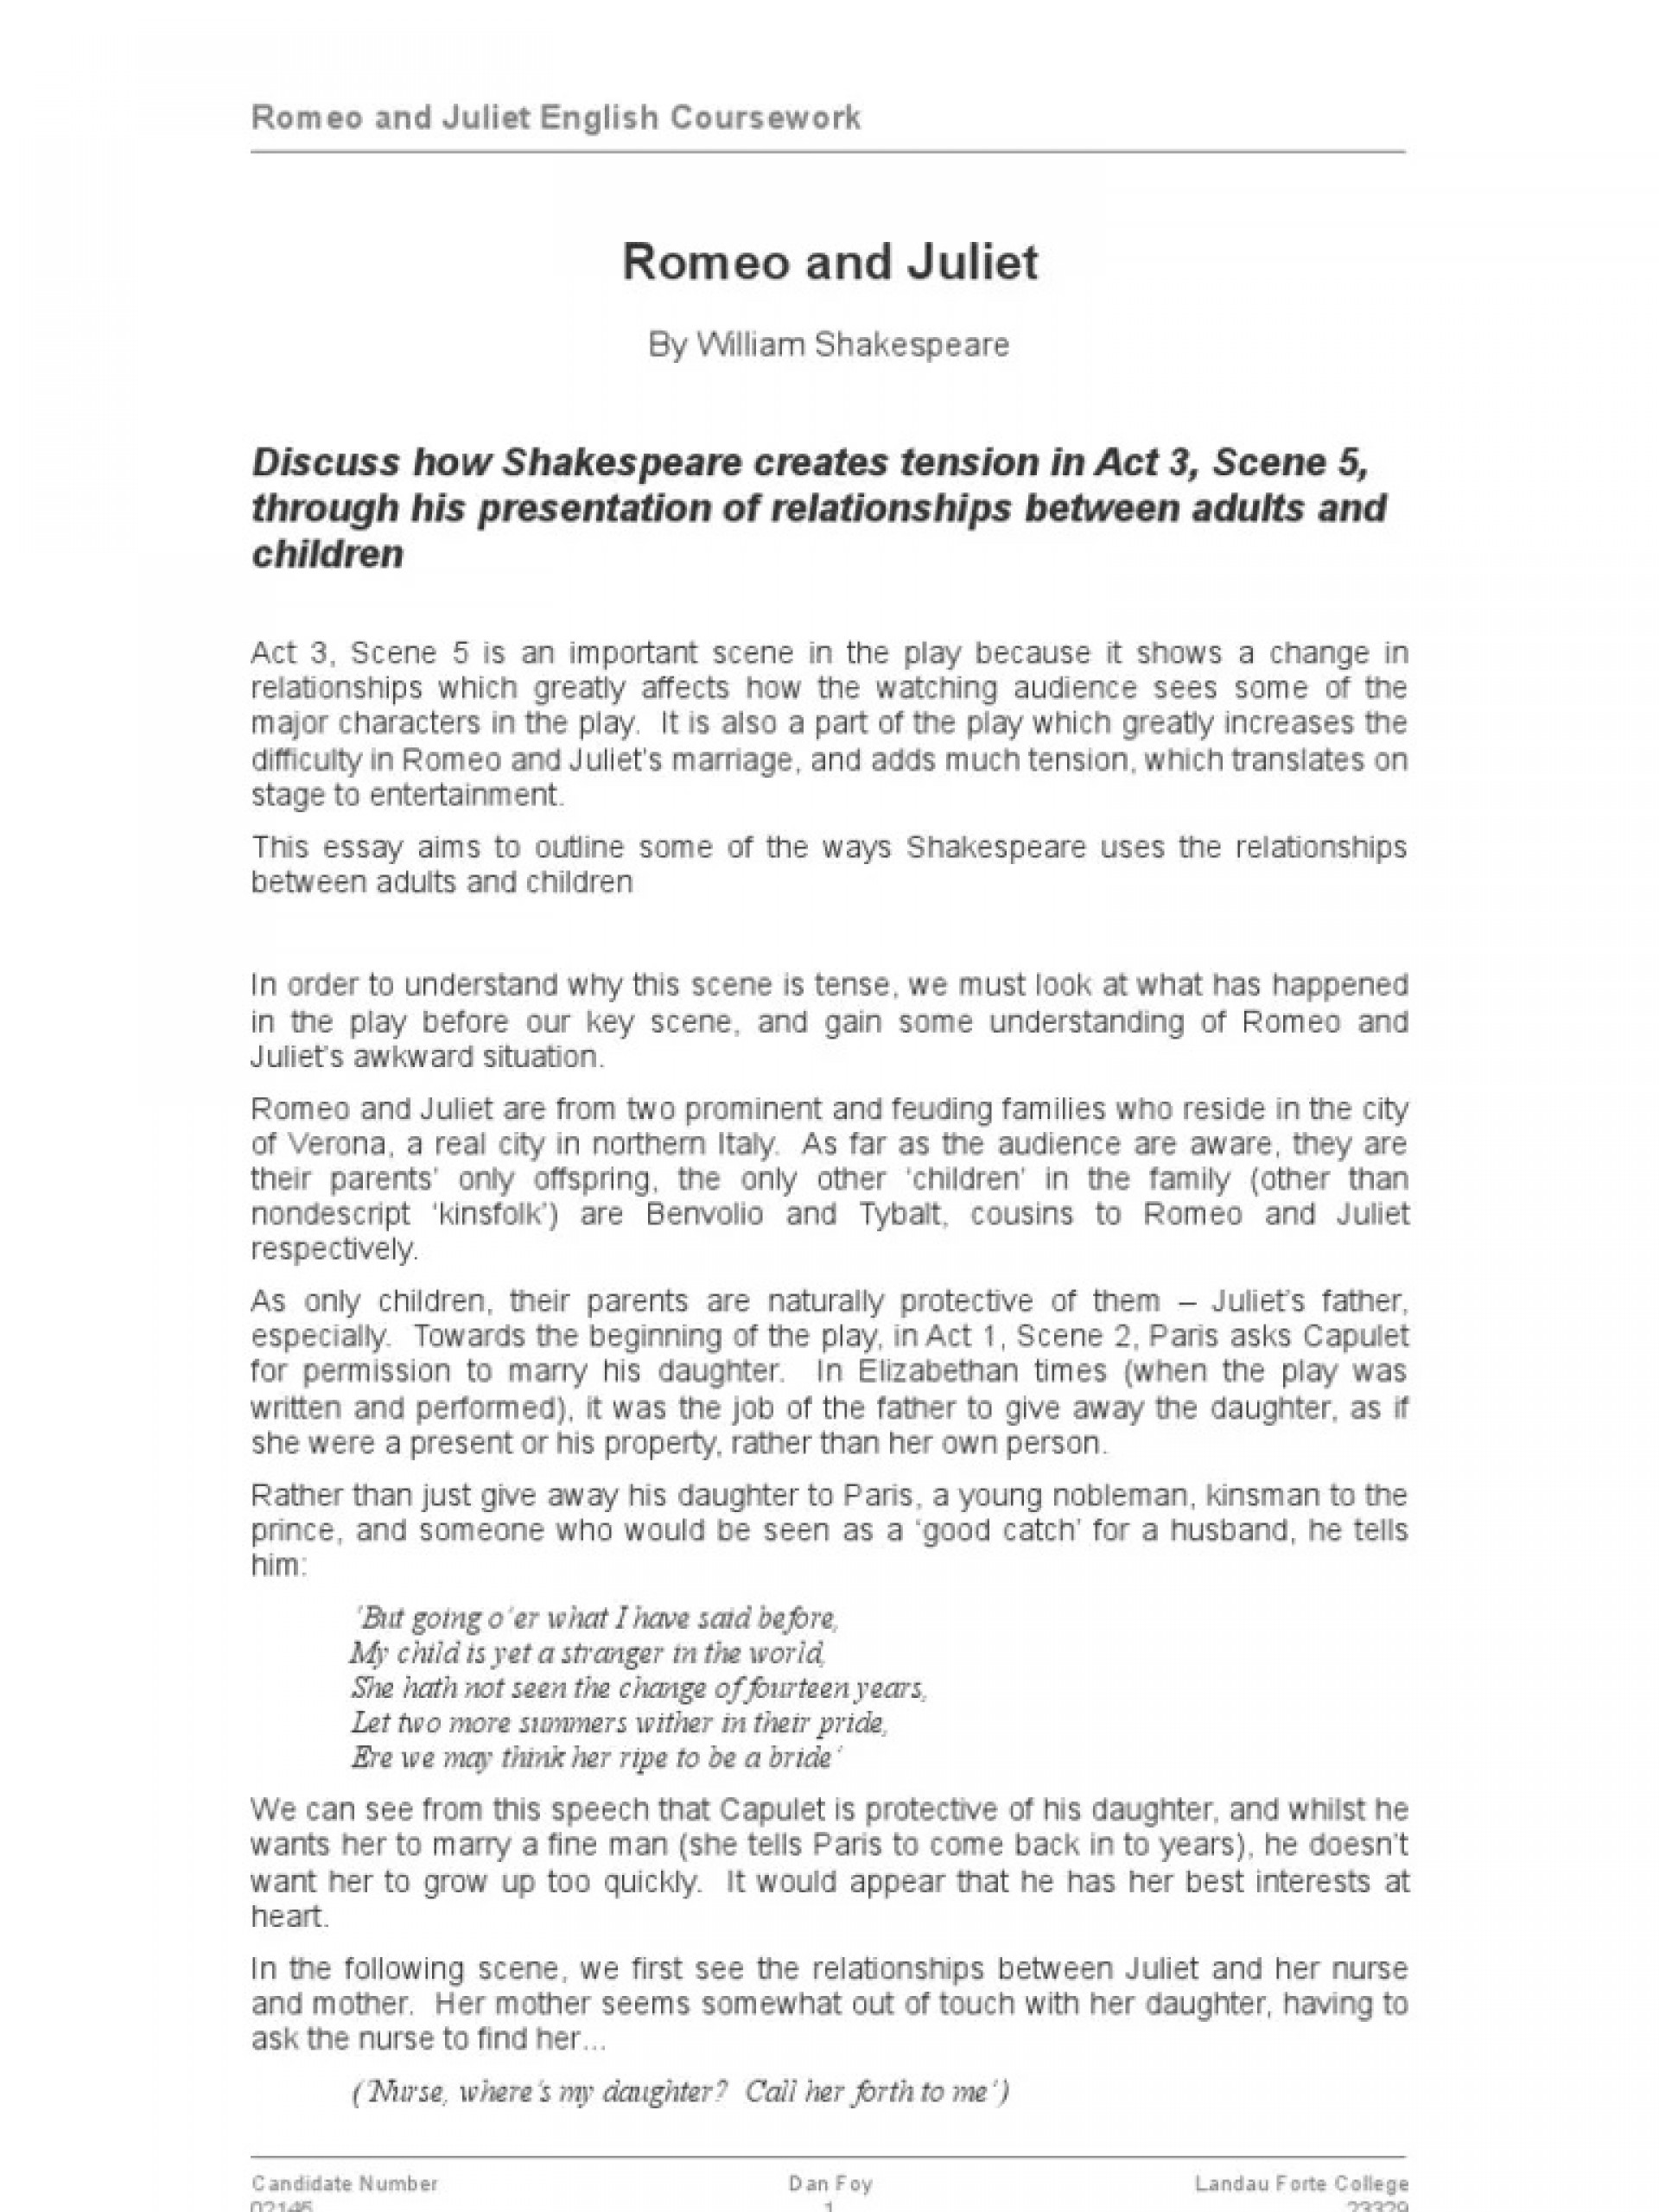 003 Wondrou Romeo And Juliet Essay Design  Who I Responsible For Juliet' Death Introduction Hook Question Pdf1920